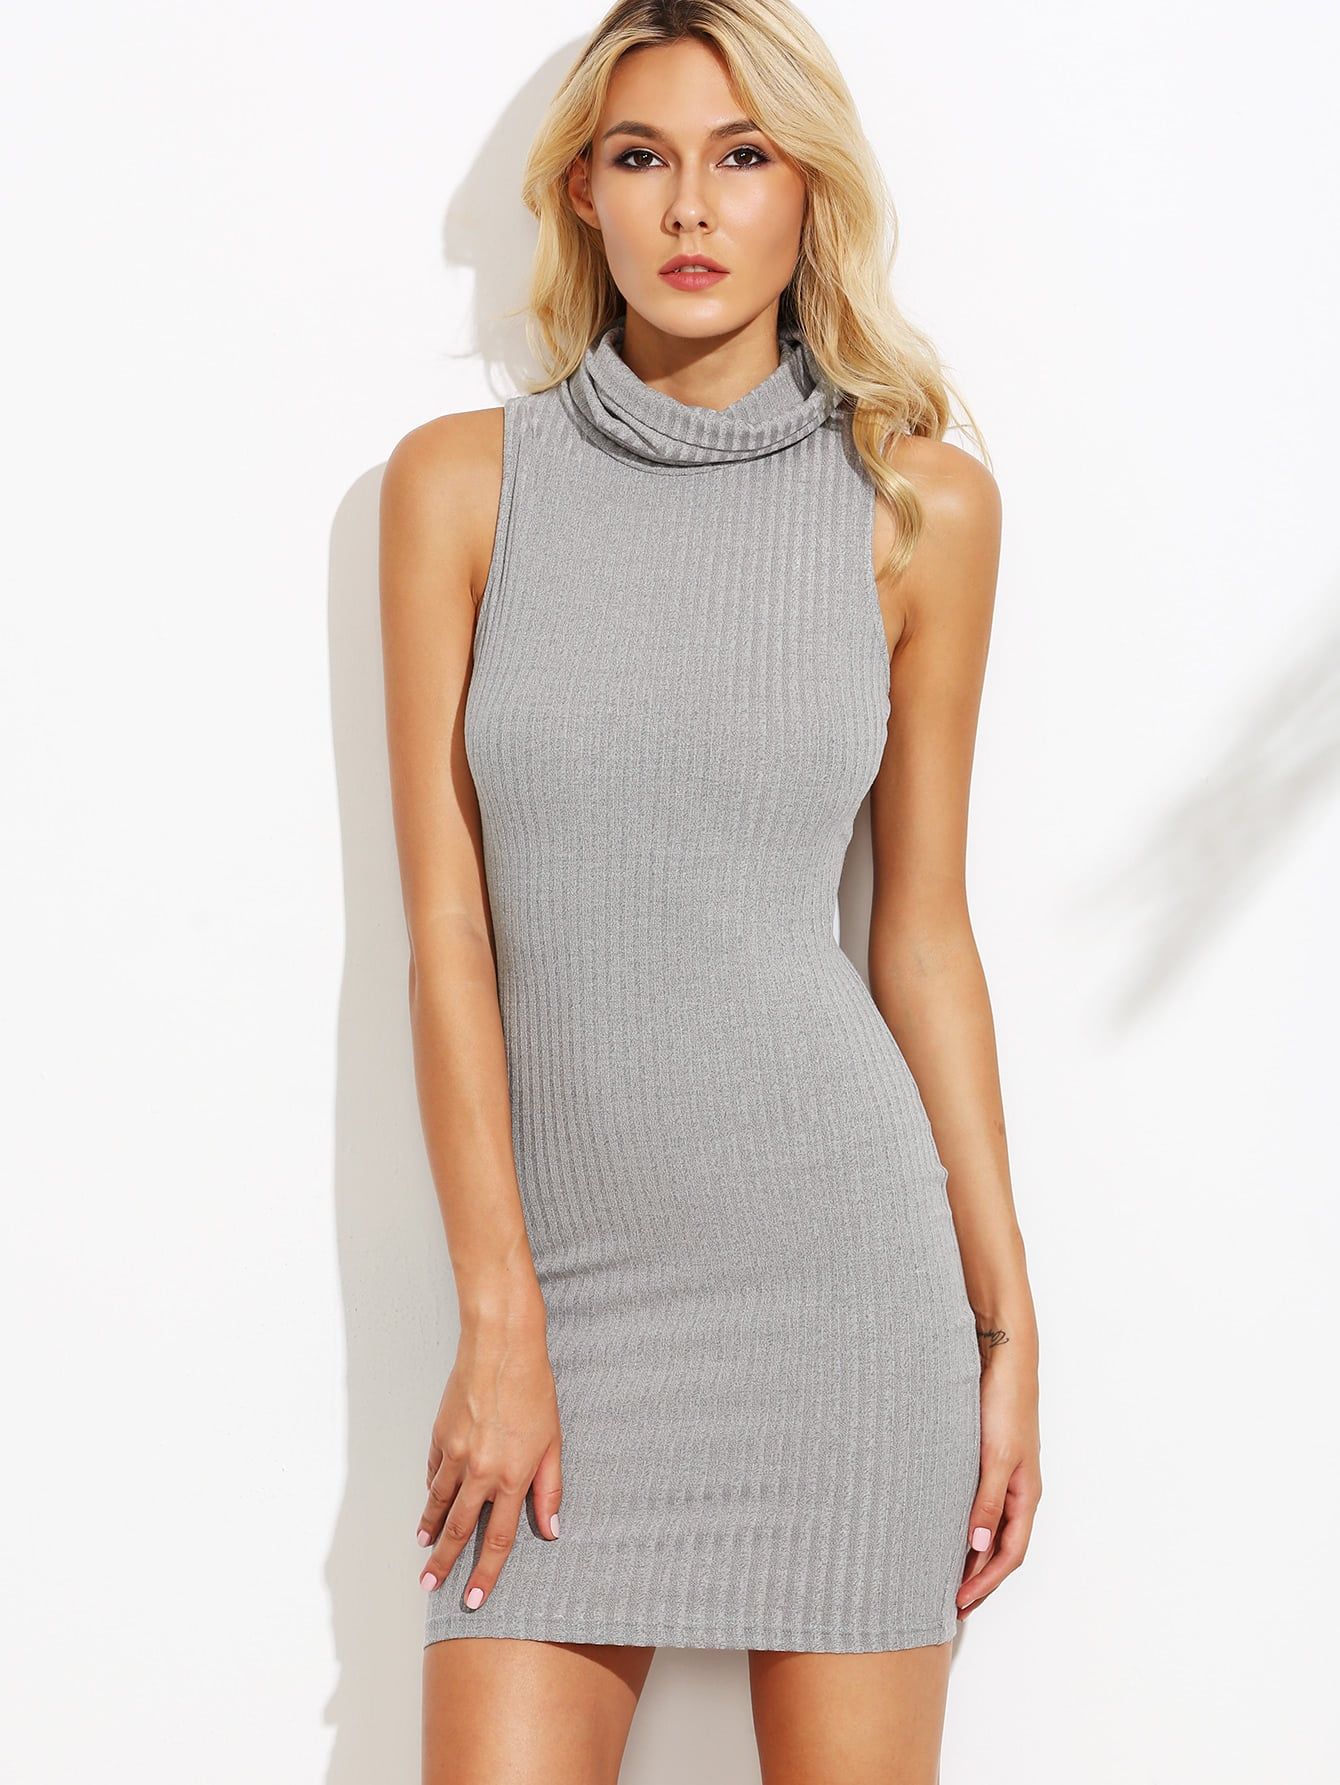 Grey Cowl Neck Ribbed Knit Sleeveless Bodycon Dress dress160816702